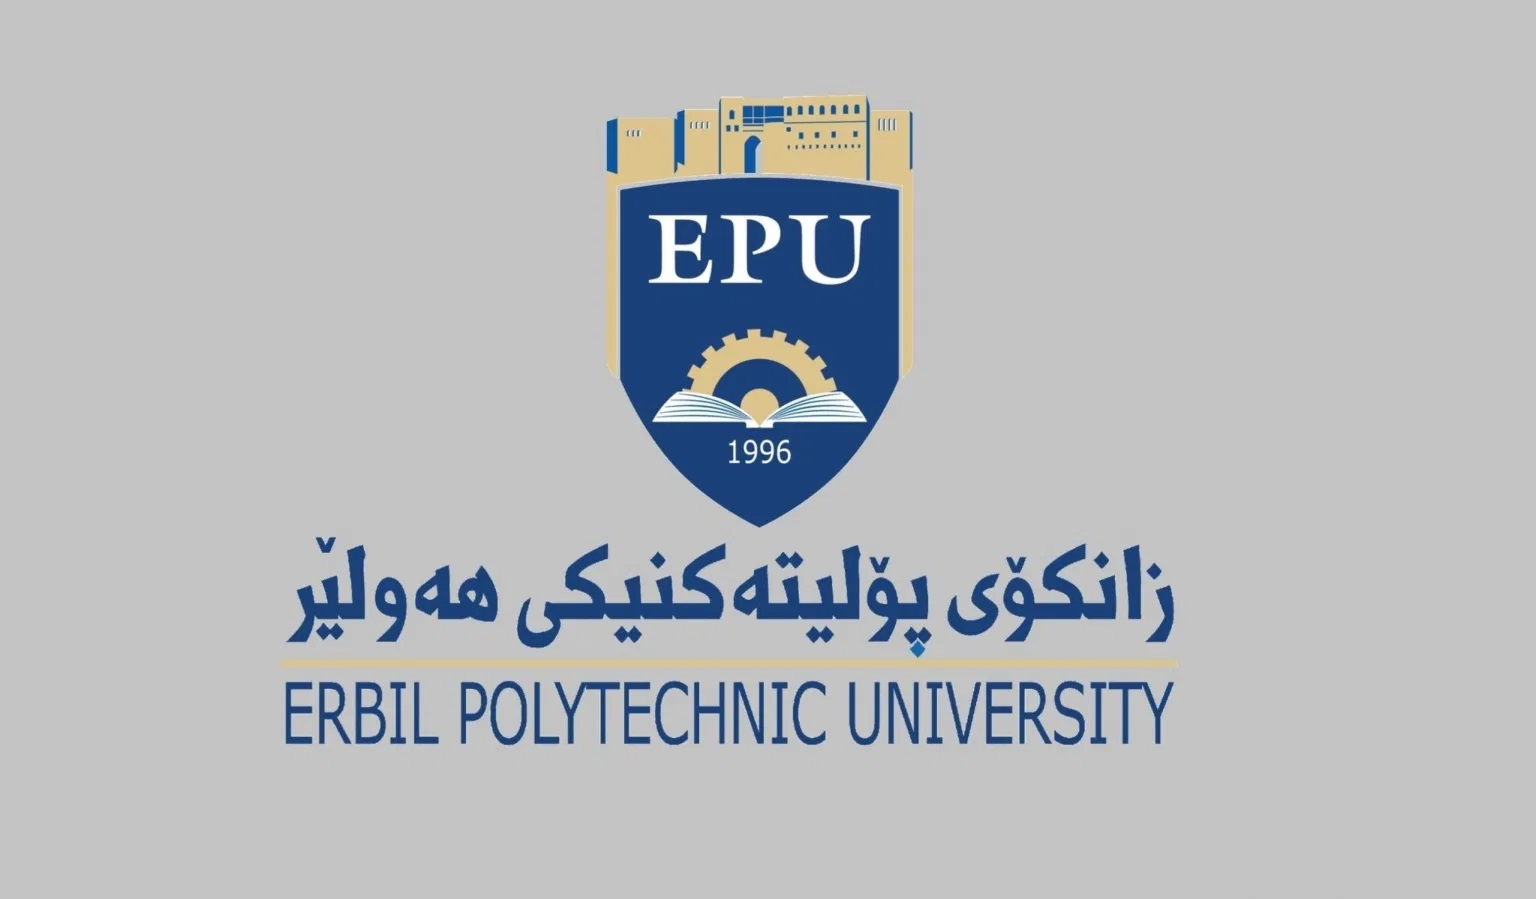 English Language Lecturers Of The Erbil Polytechnic University Participate In The British TESOL Training